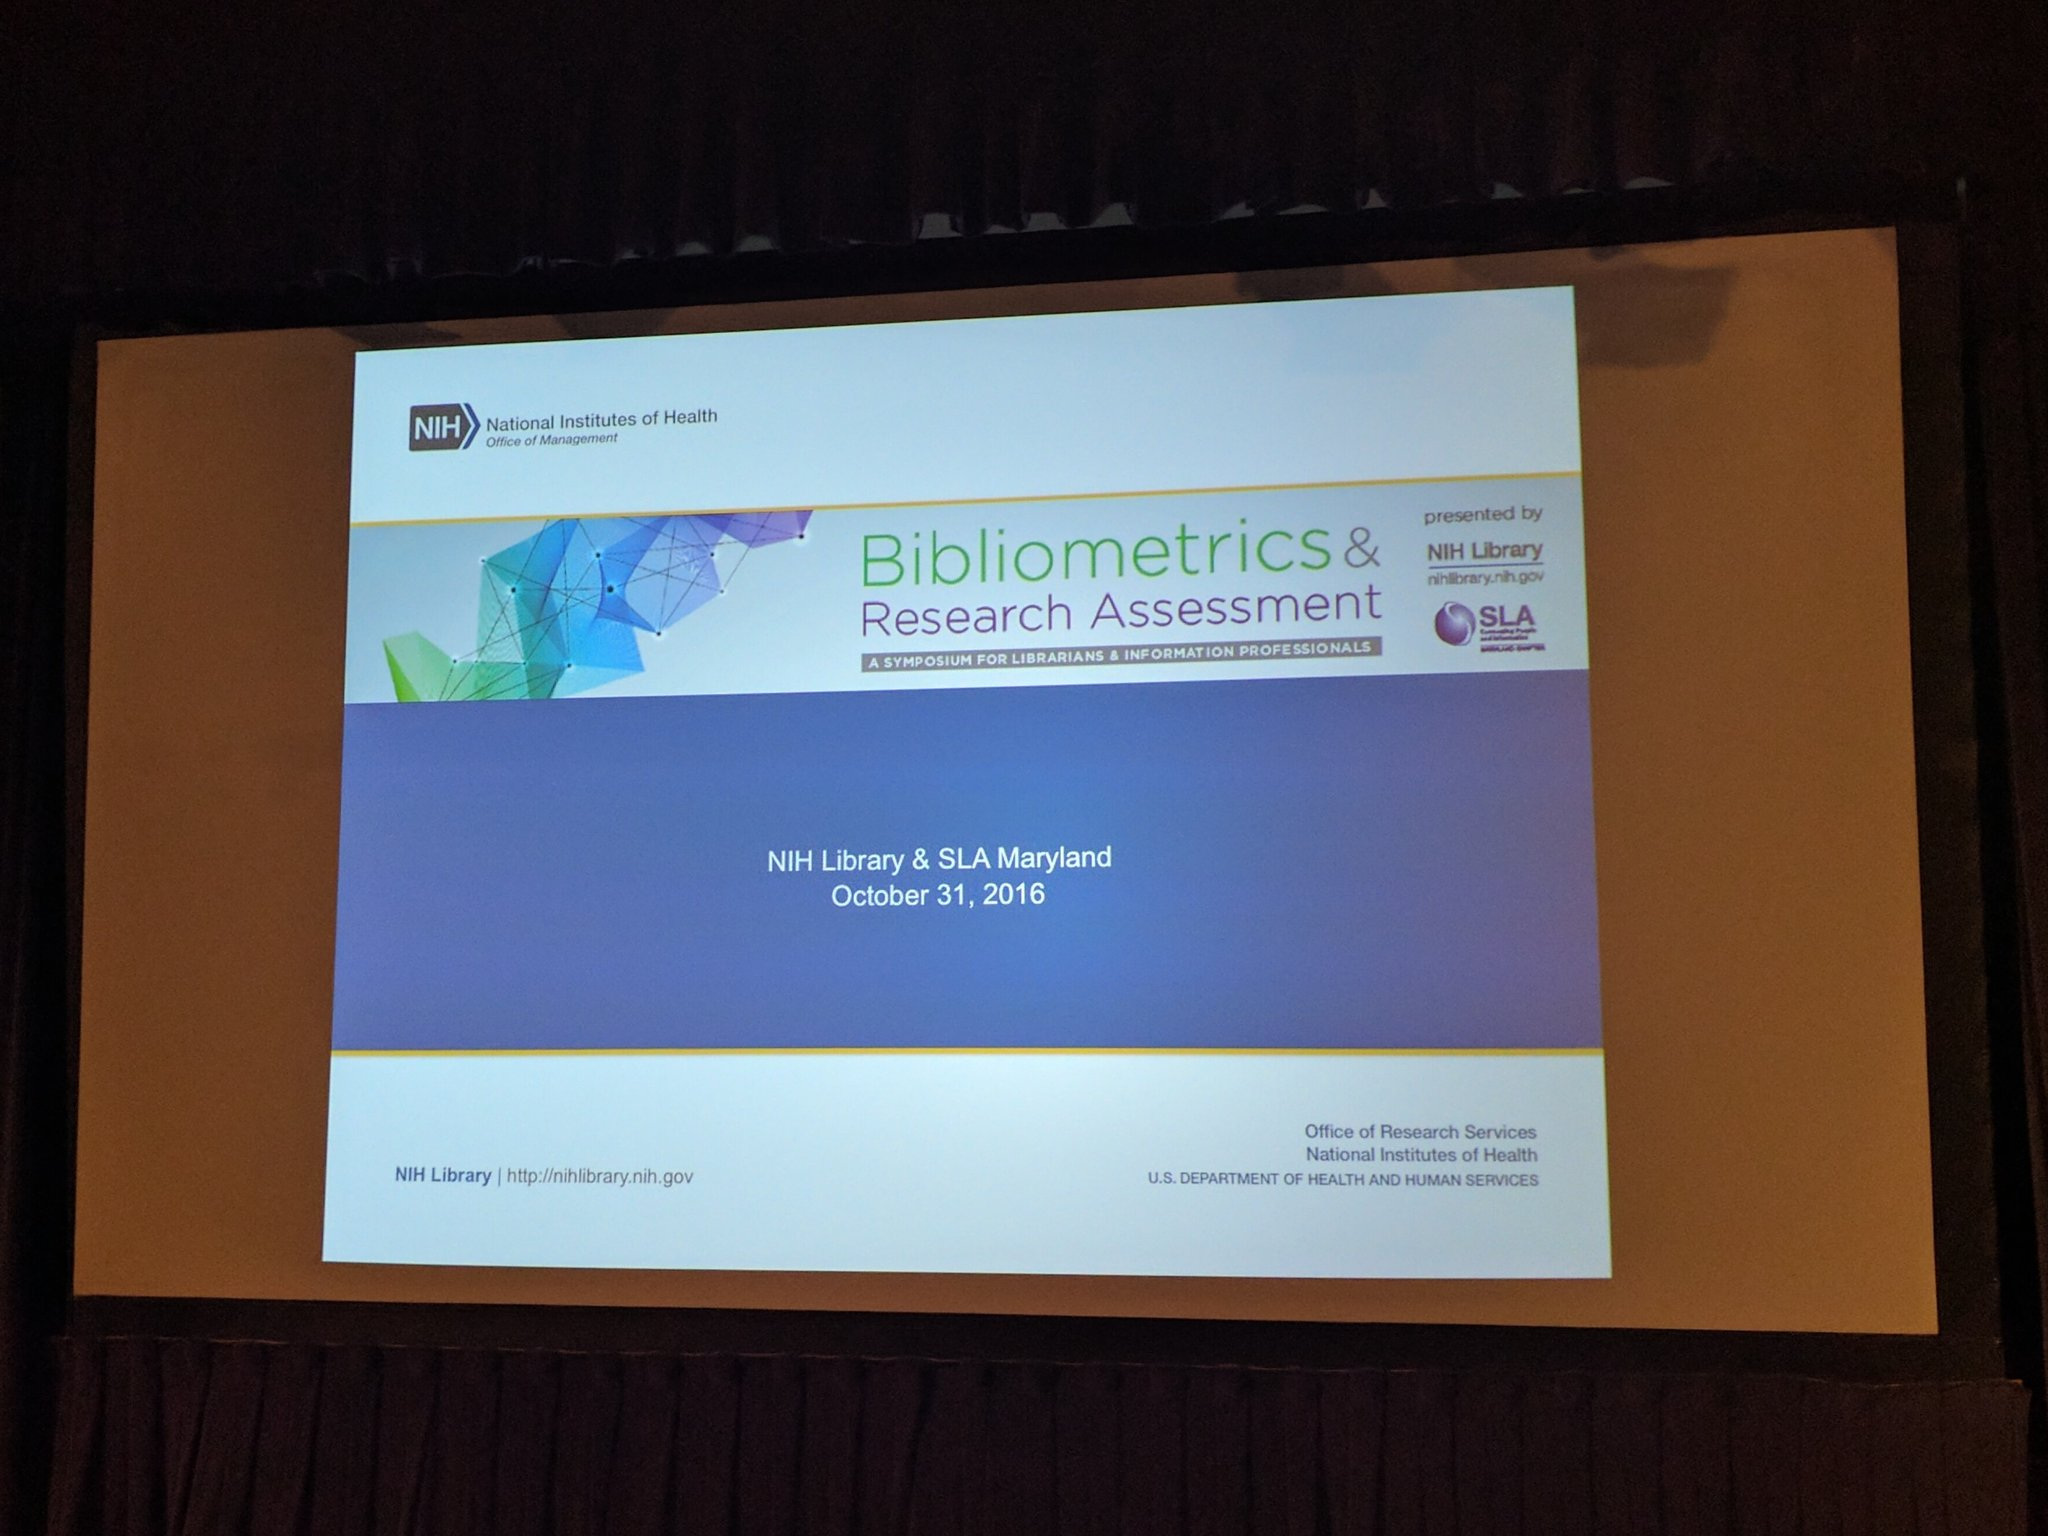 Ready for #bibliometrics & #researchassessment symposium! @nihlib @sla_md https://t.co/BGSVXmMMlI